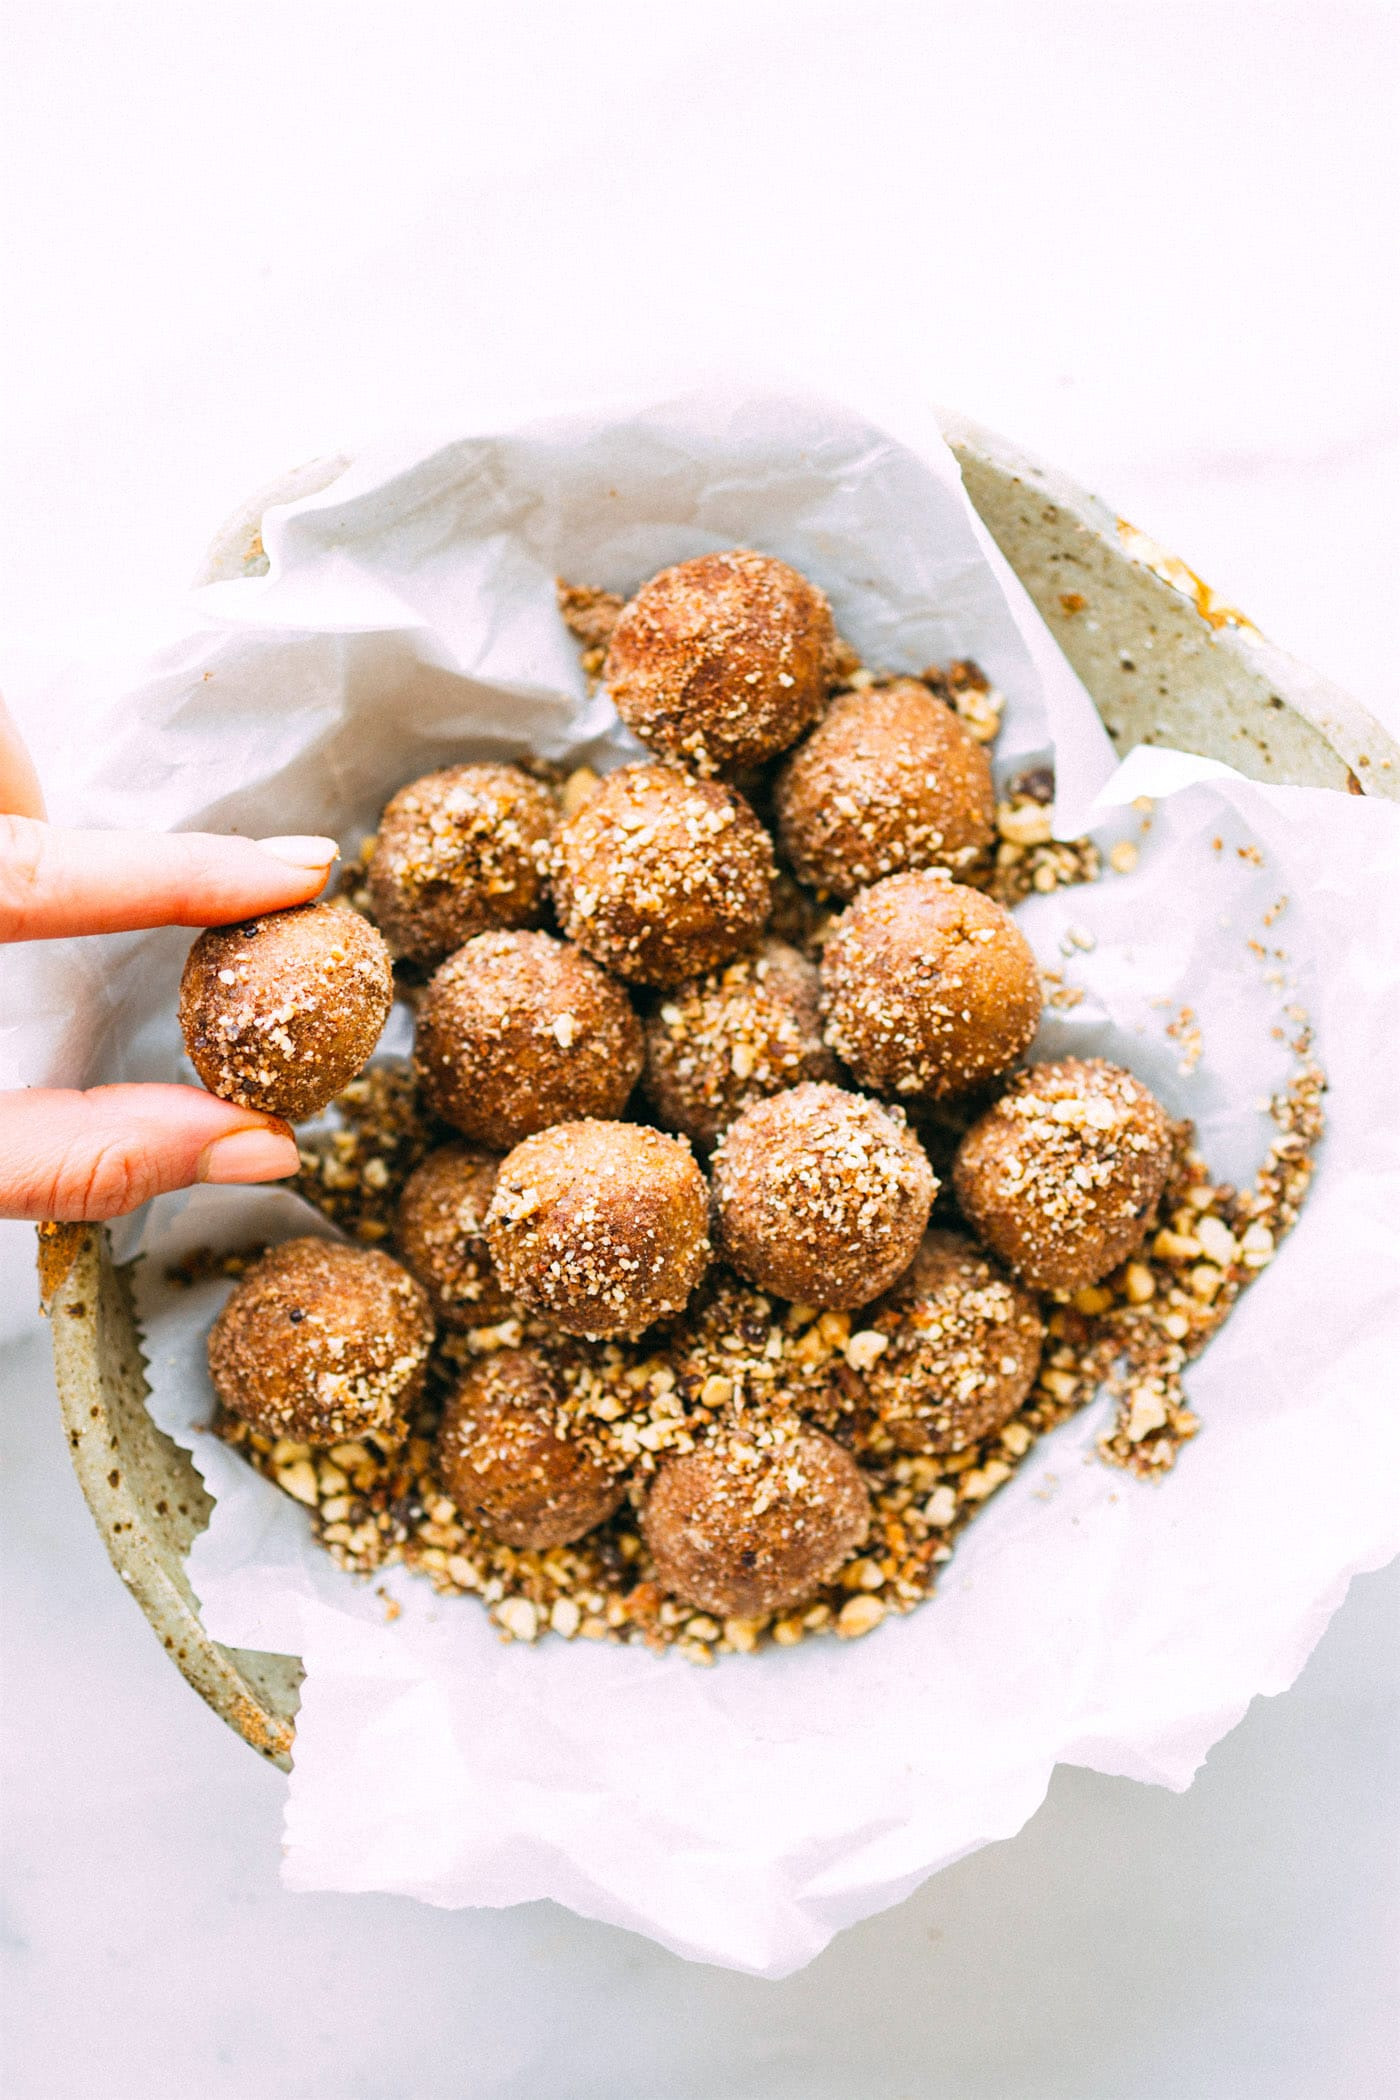 No Bake Breakfast Cookie Bites with wholesome ingredients! Rich in fiber, protein, and vegan! Cinnamon, oats, nuts, molasses, maple syrup! Breakfast to go!